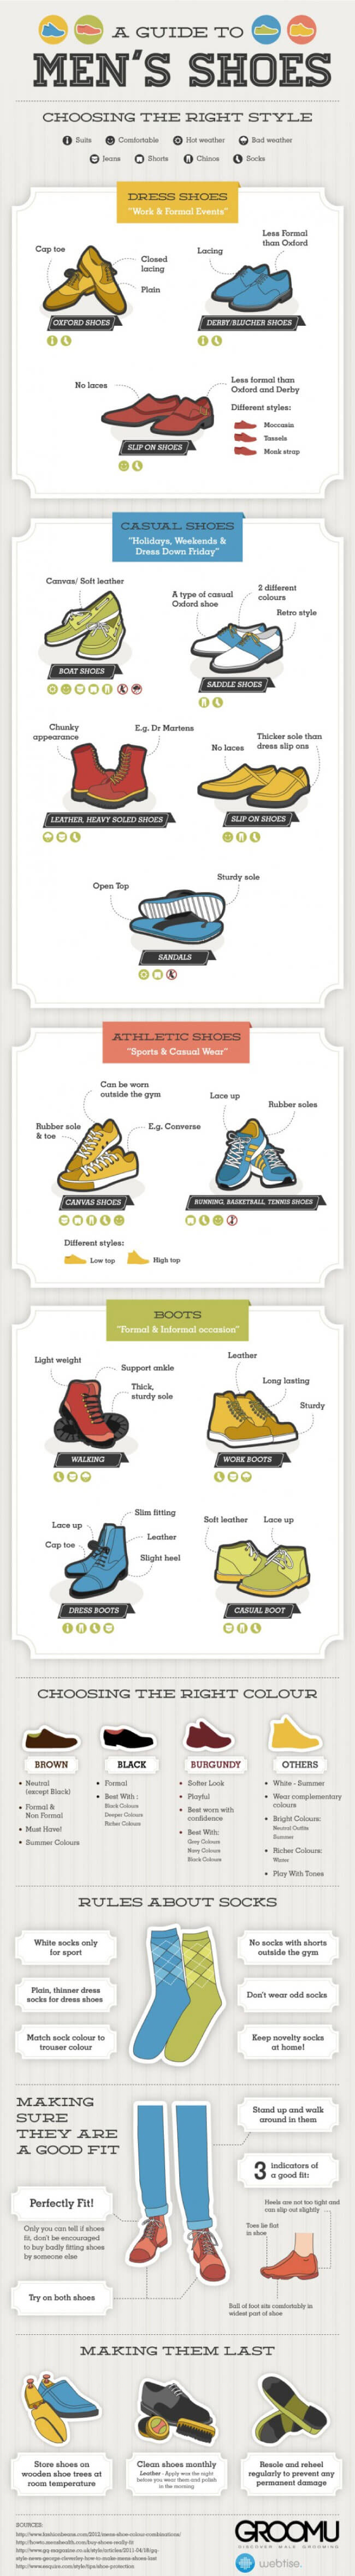 Image with title A Guide To Men's Shoes